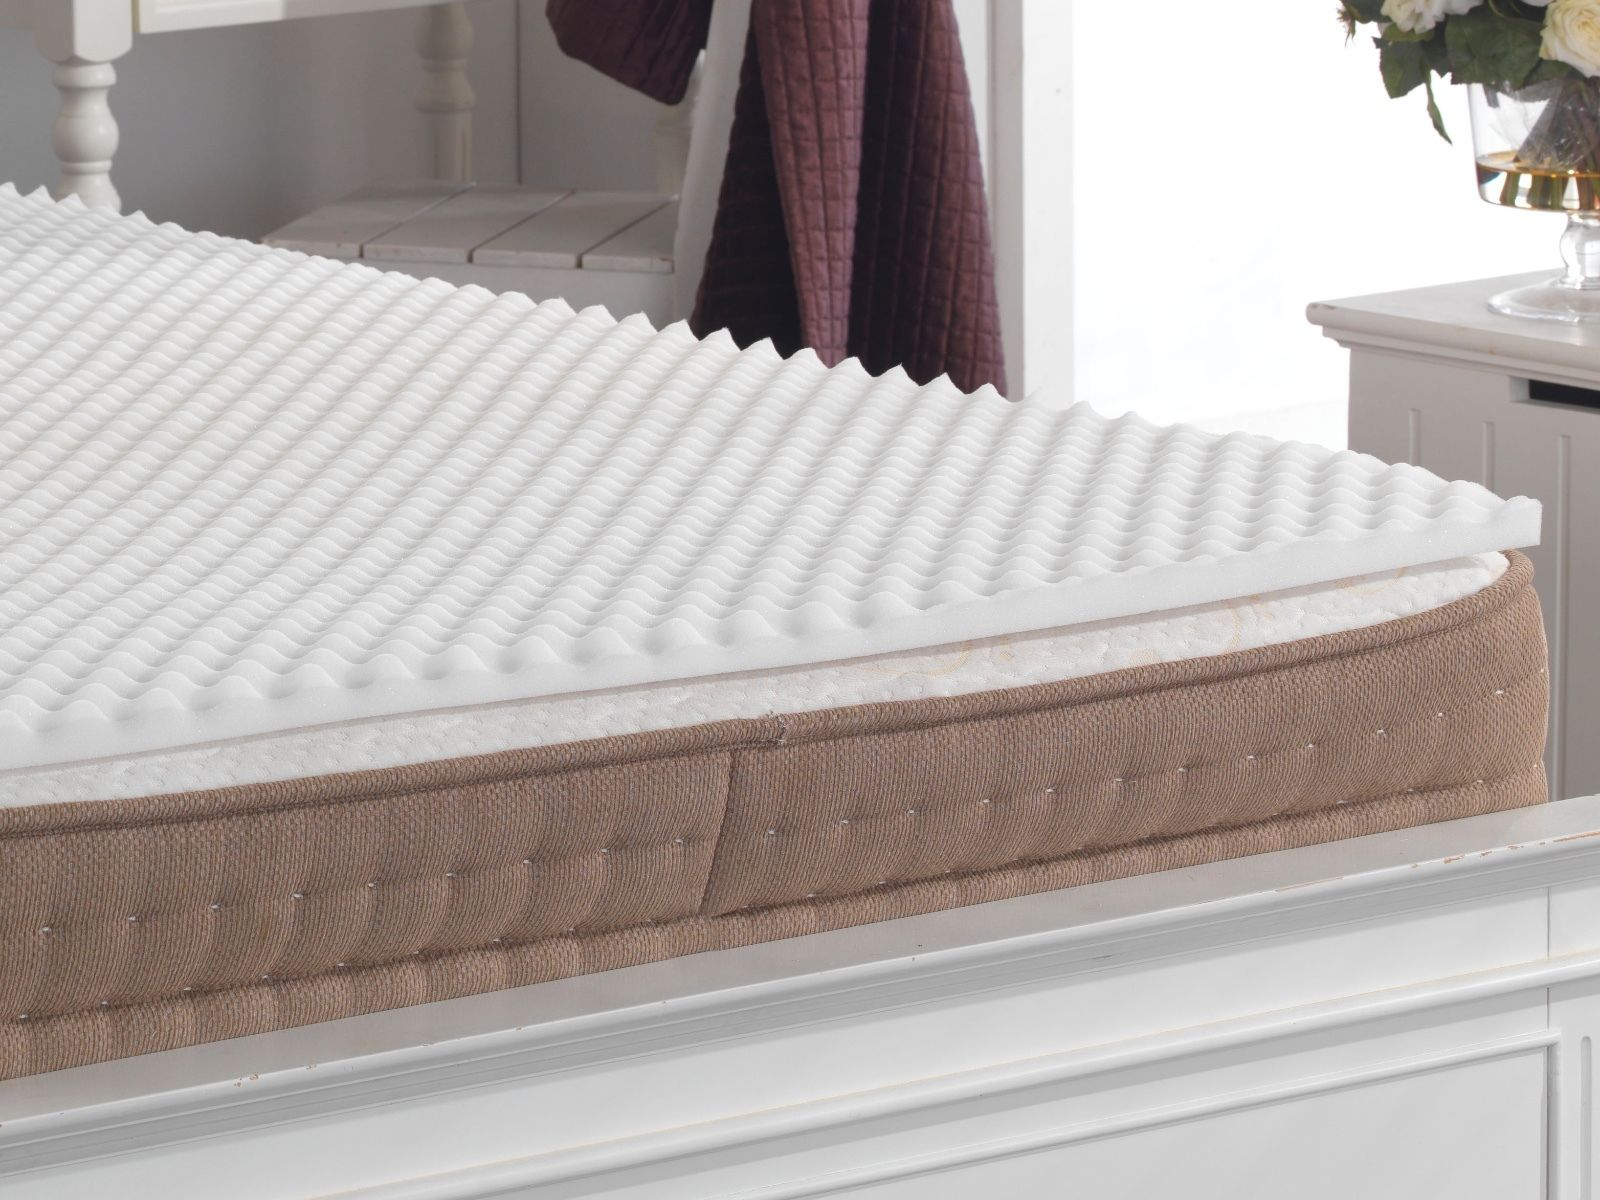 pad foam waterproof topper your white ideas memory beautiful crib all tempurpedic and with bed gel mattress linen bedroom remarkable design lower mattresses also for affordable interior tiers best